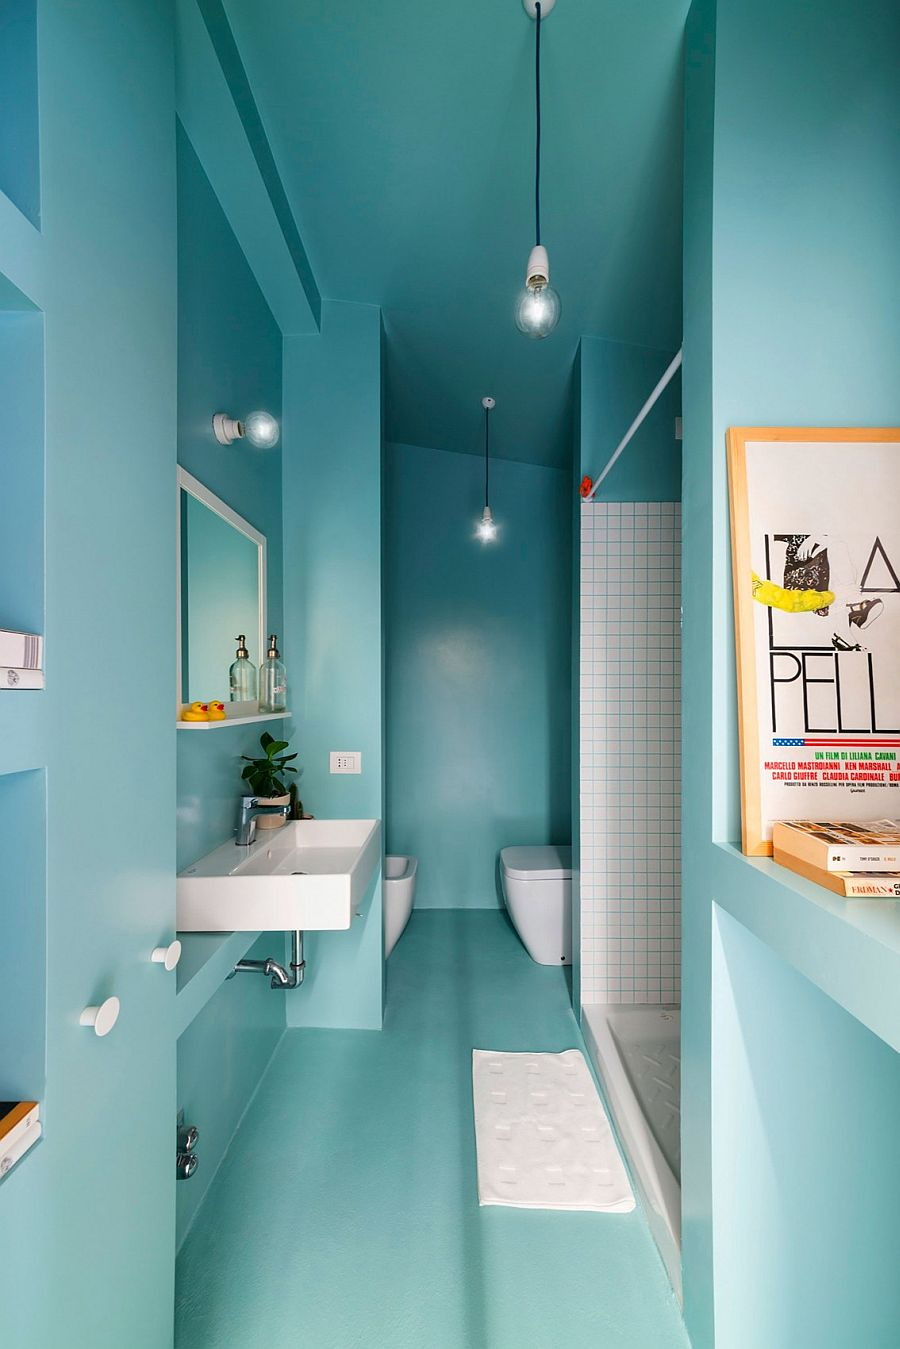 25 Small Apartment Bathroom Ideas That Maximize Space And Efficiency